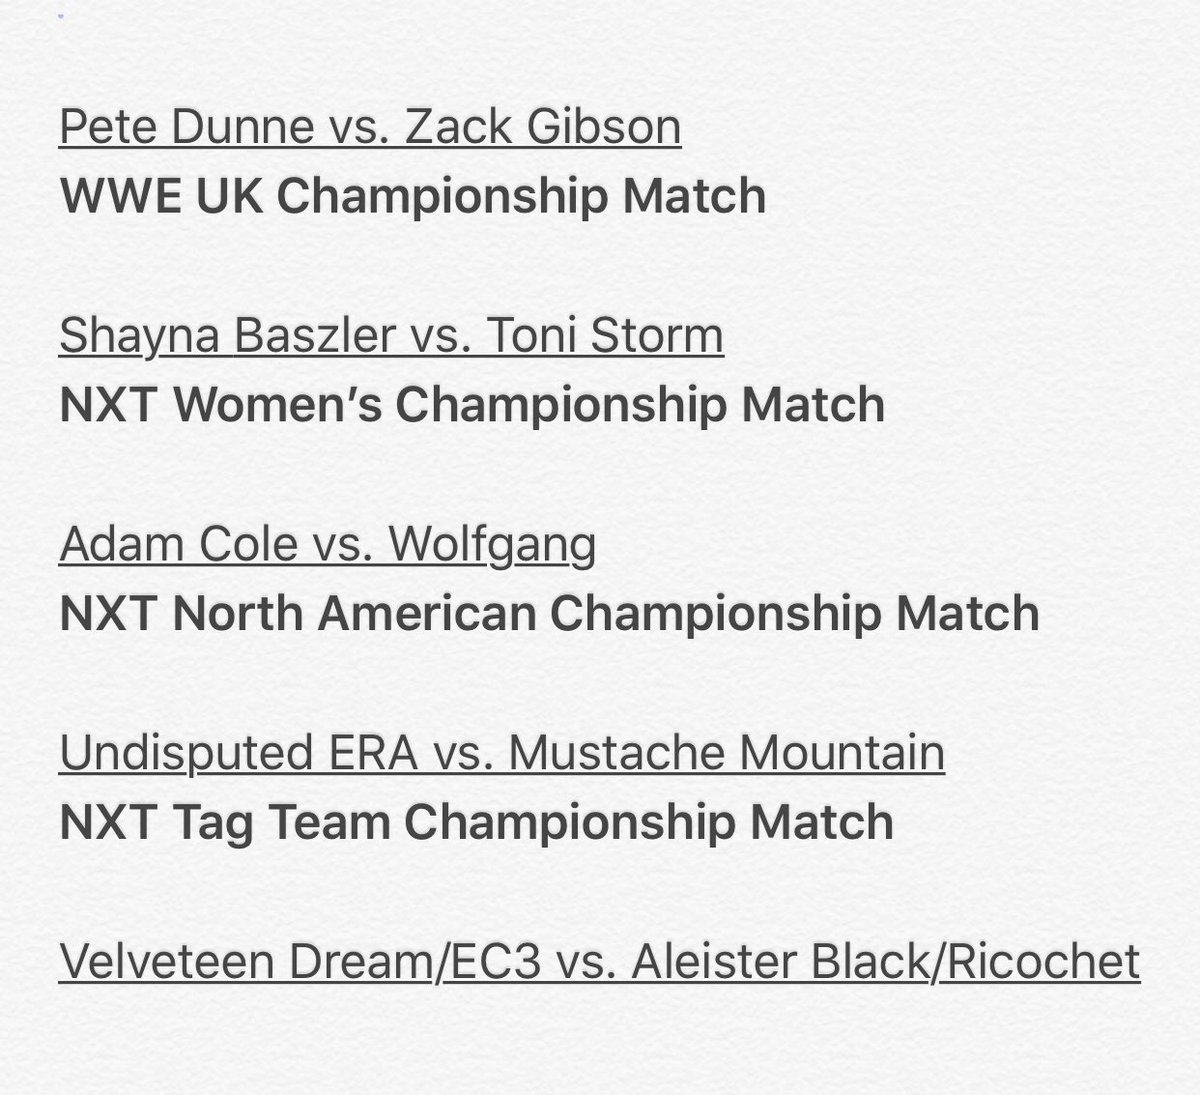 TONIGHT @RoyalAlbertHall, @WWENXT and stars from the @WWEUK division bring you an absolutely STACKED card. 4 championship matches and a huge tag team match featuring #NXTChampion @WWEAleister and @KingRicochet vs. @therealec3 and @VelveteenWWE. This is MUST SEE!! #WeAreNXT